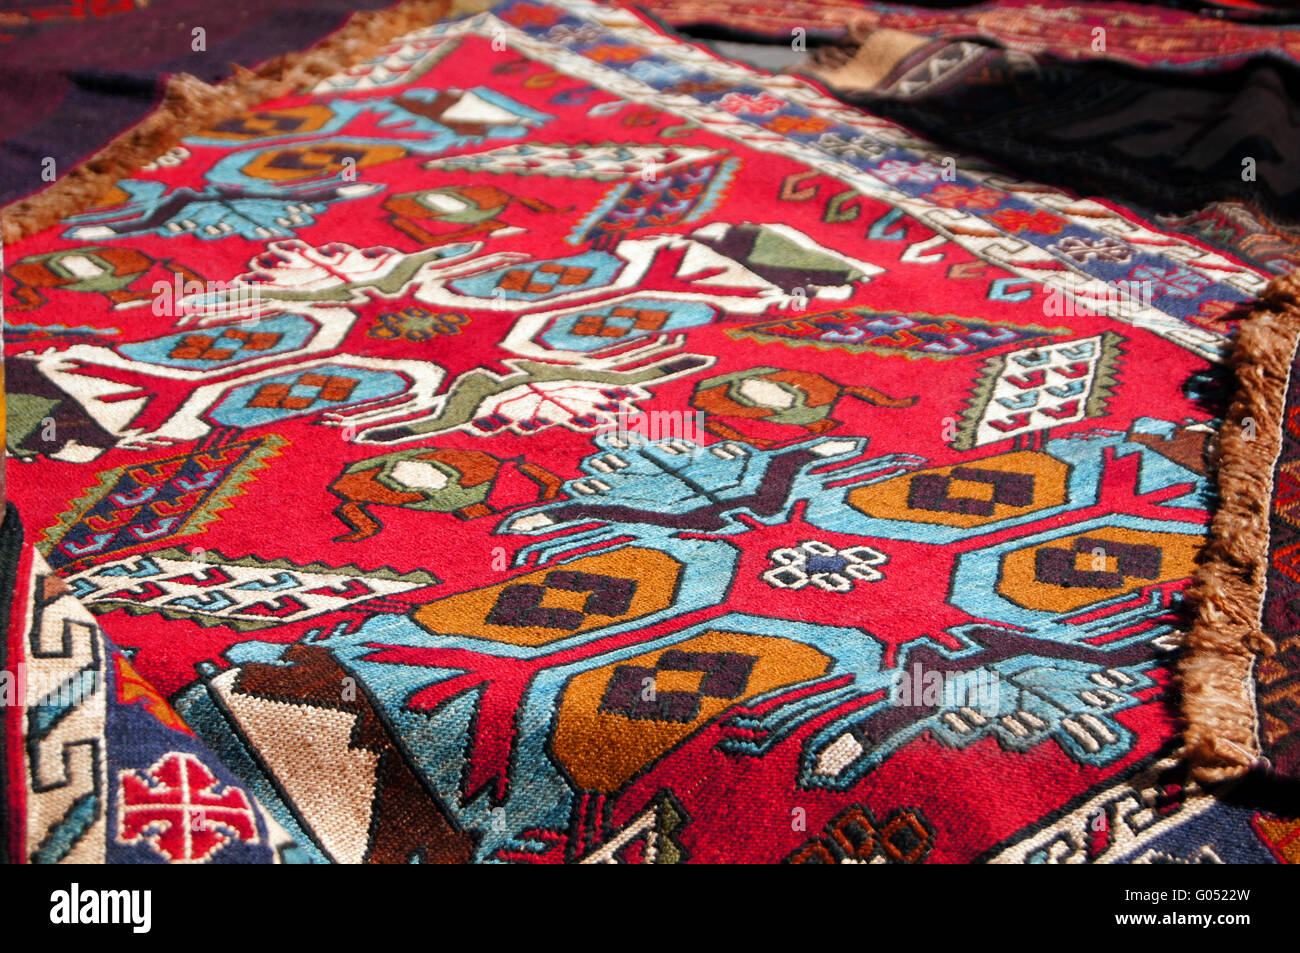 Old carpets in the street market in Tbilisi Old town, Republic of Georgia - Stock Image